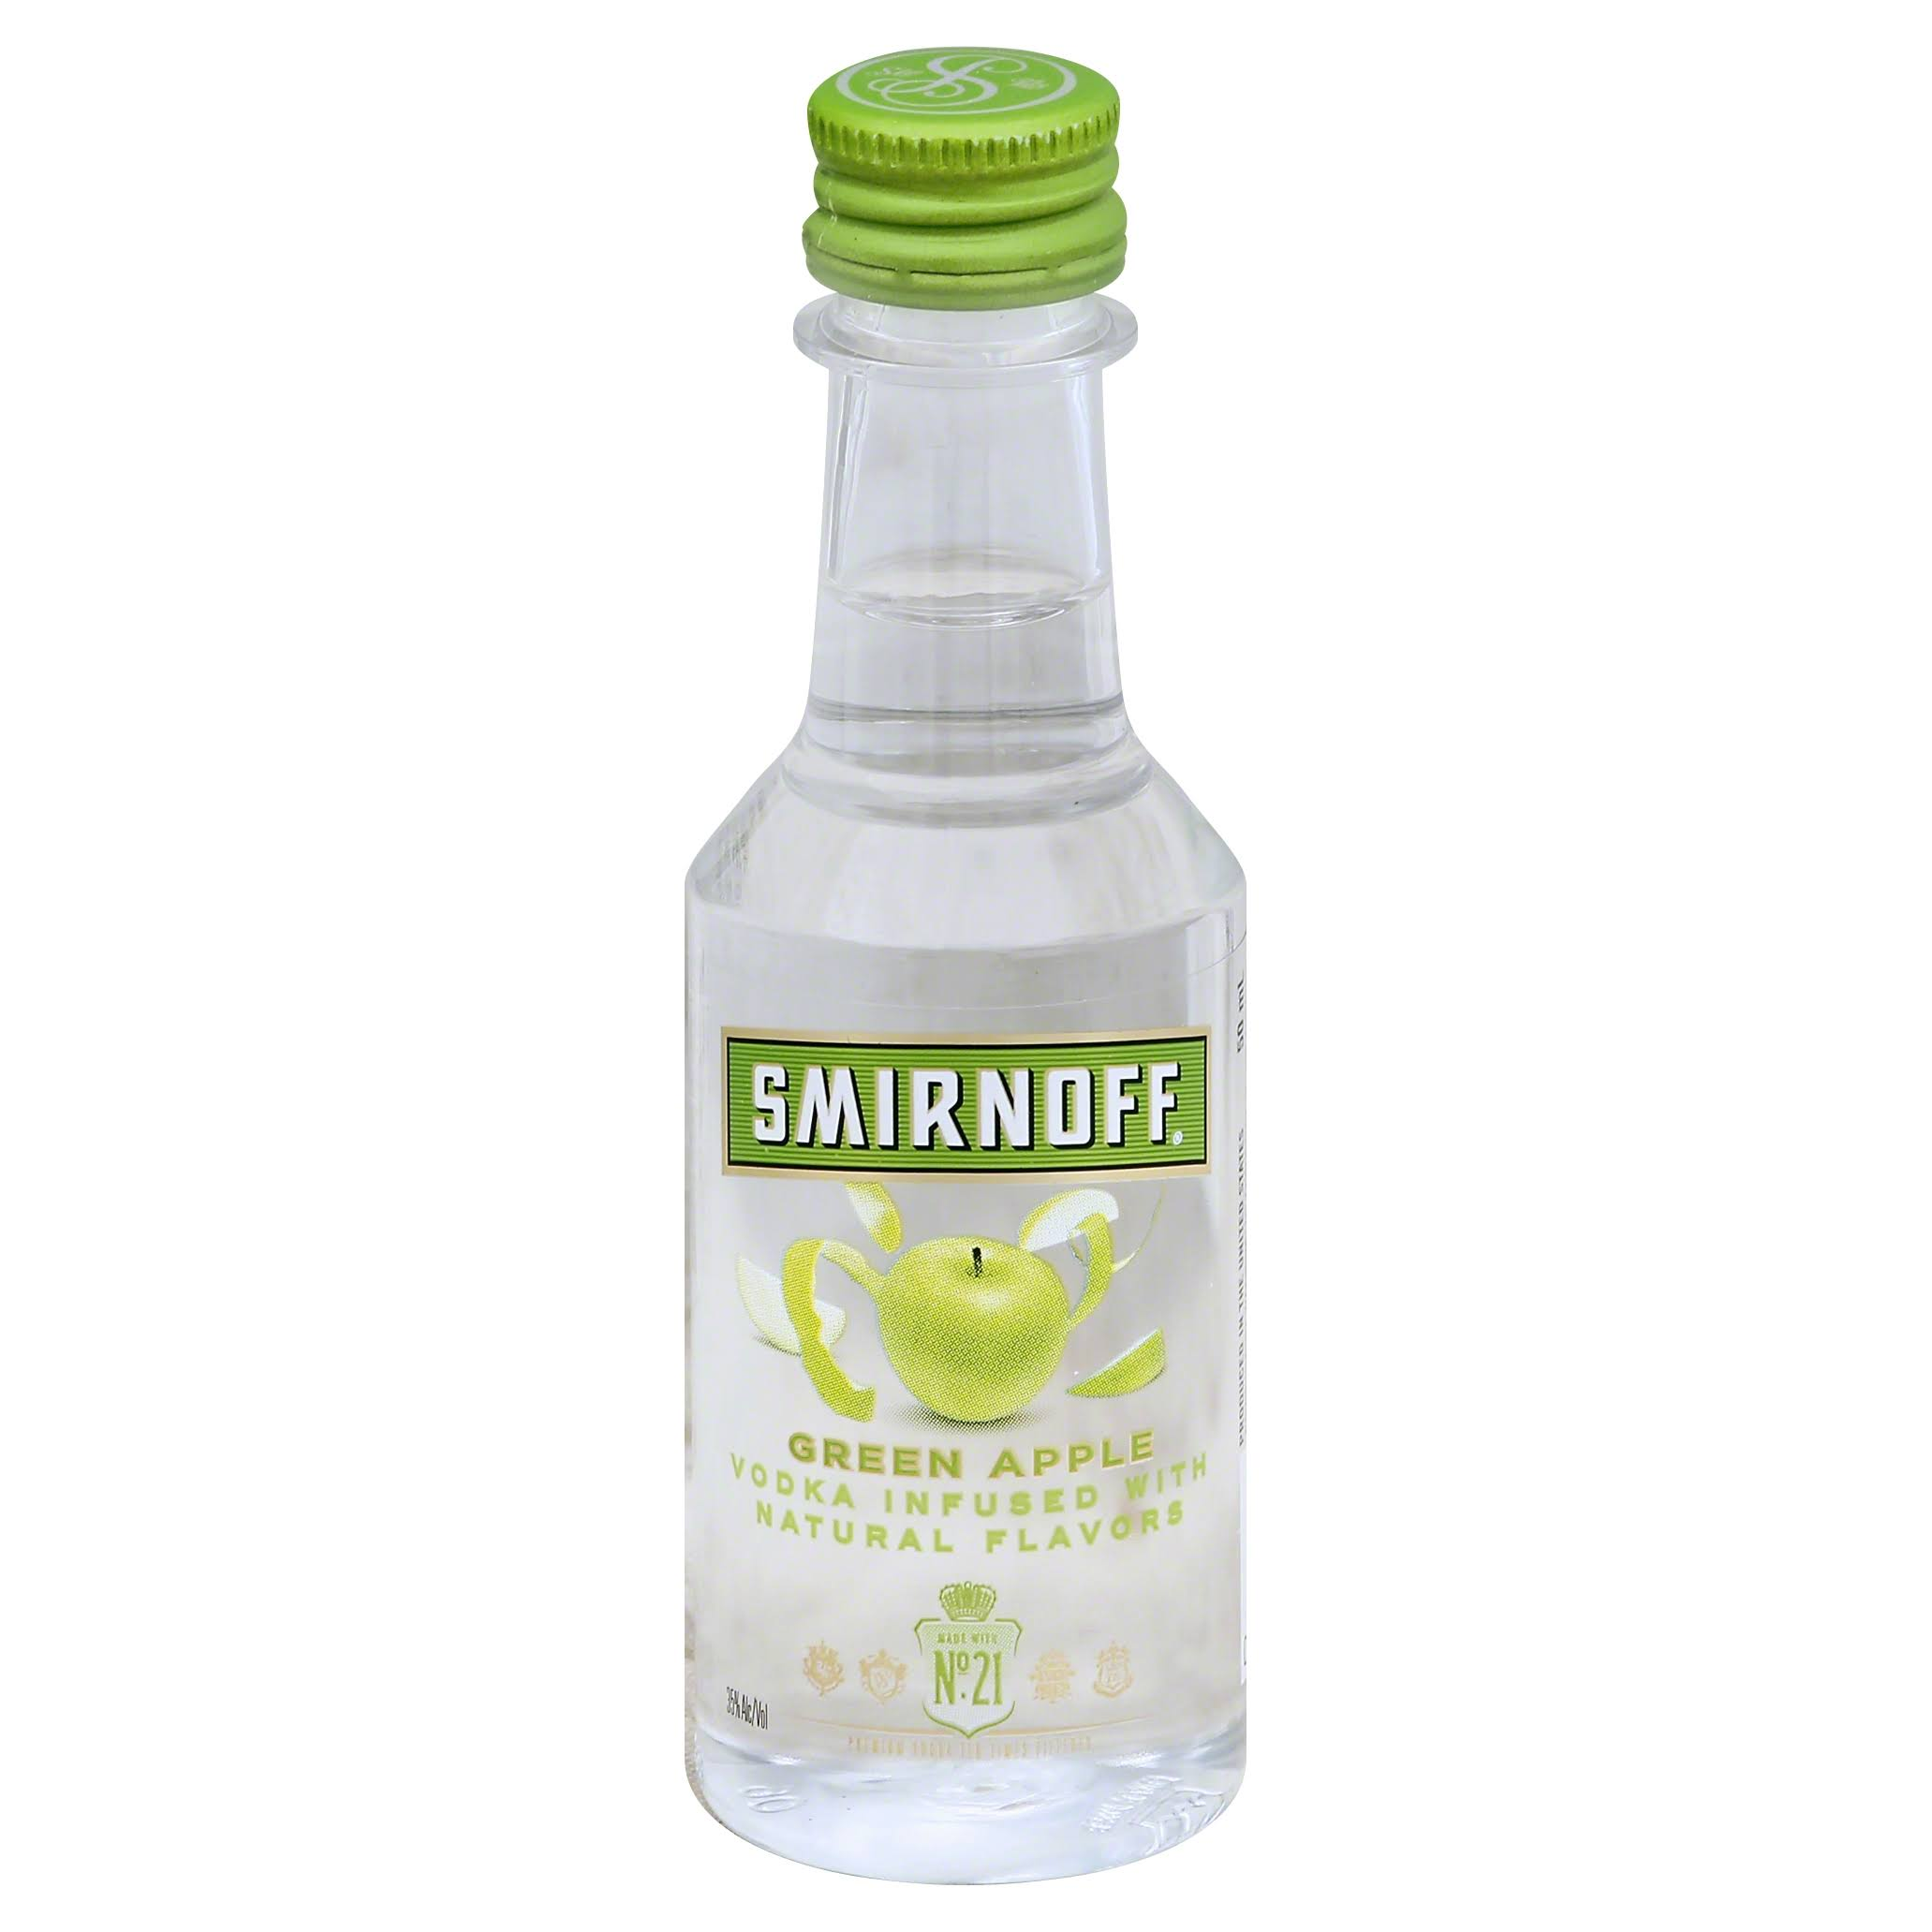 Smirnoff Twist of Green Apple Vodka - 50 ml bottle